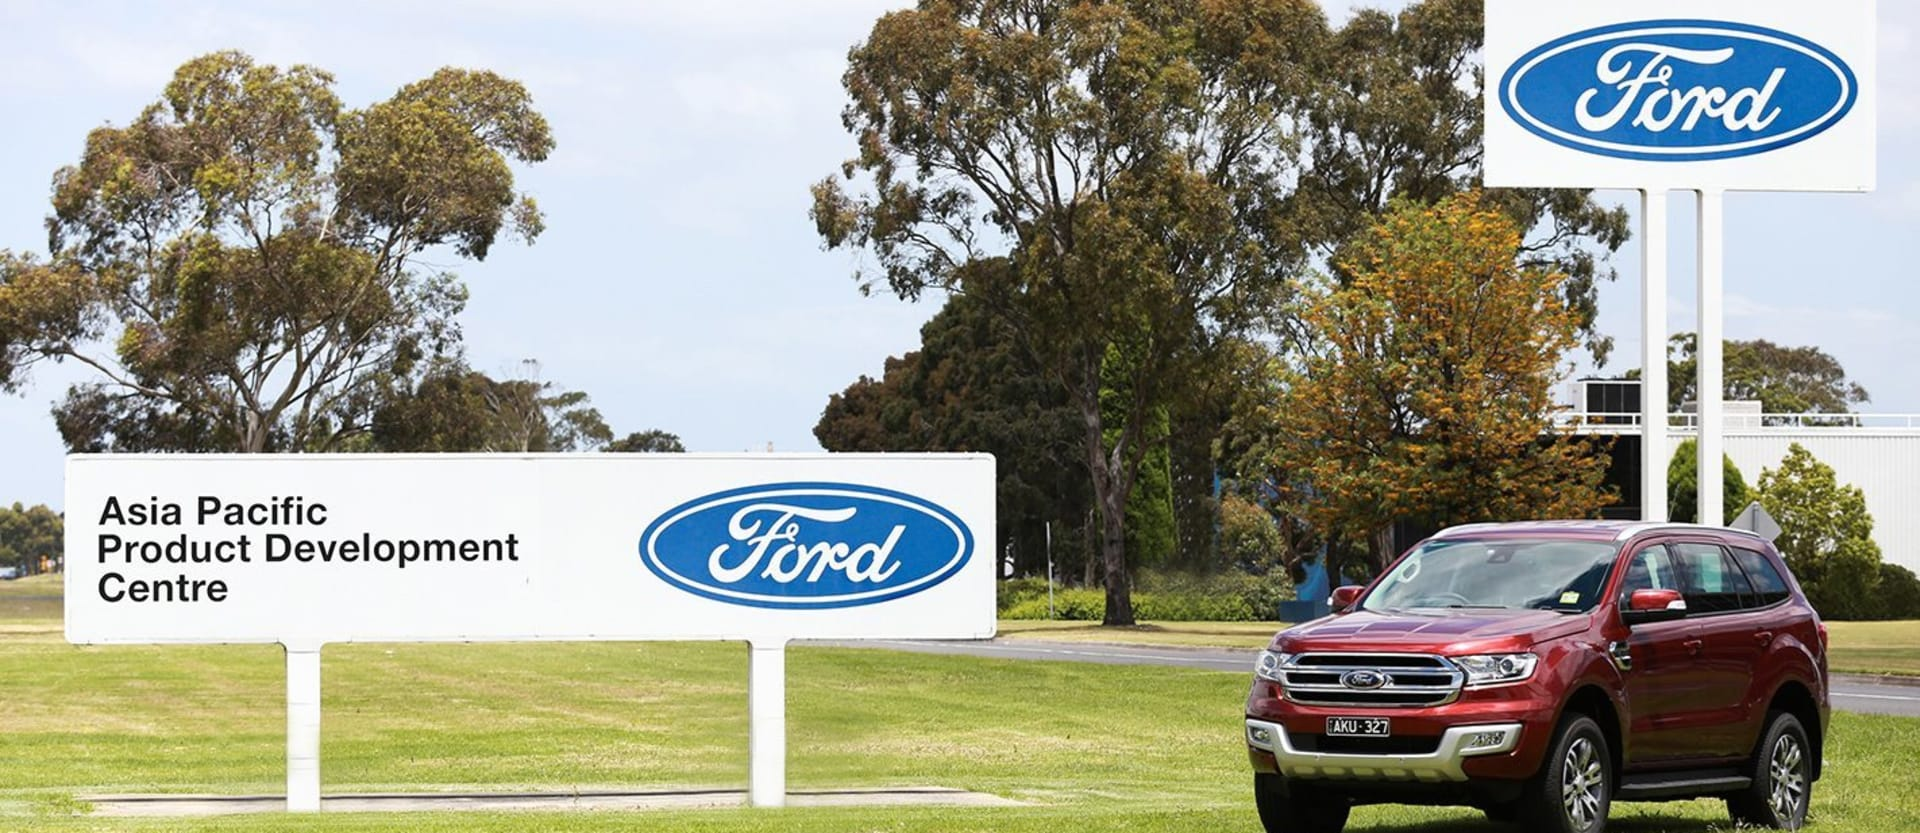 Ford Asia Pacific Research And Devrelopment Jpg